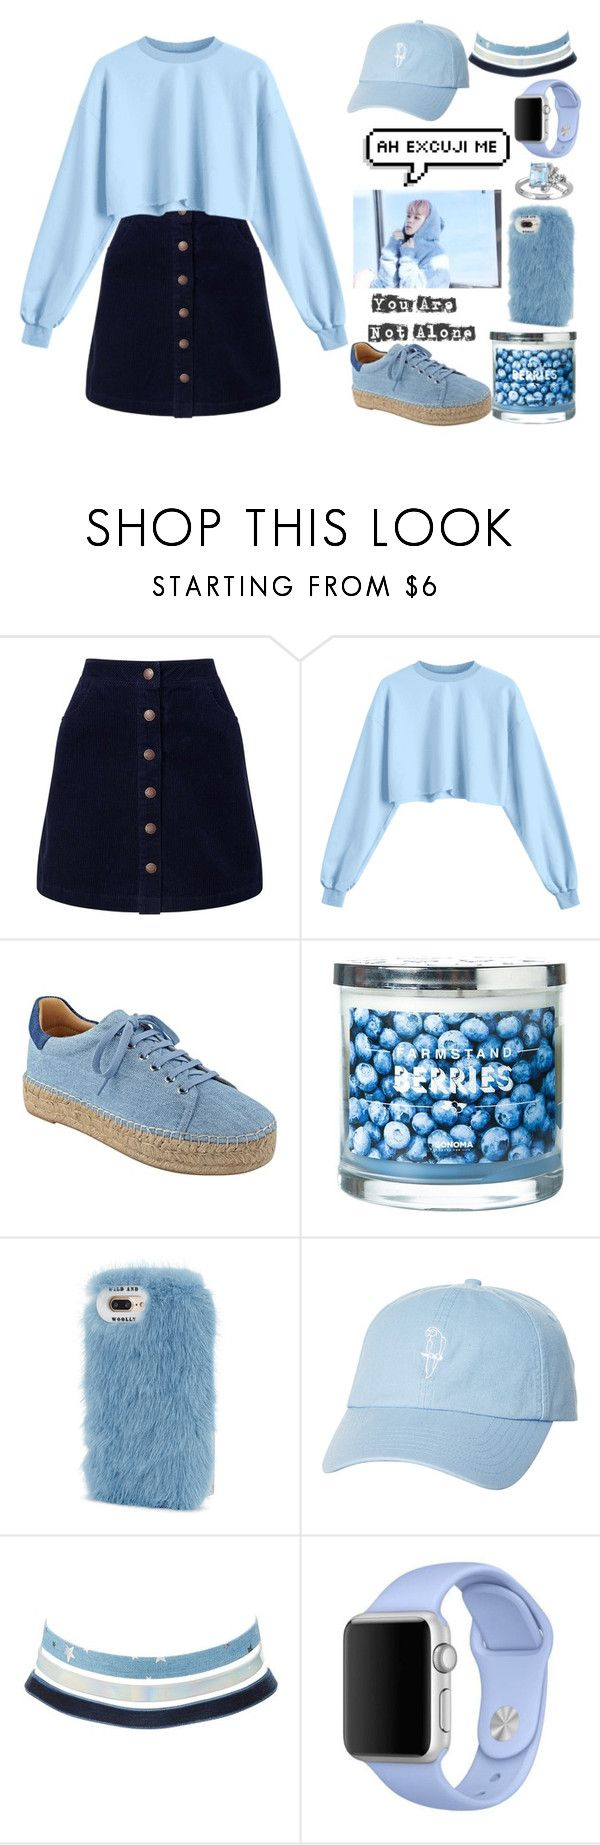 """bts Jimin style girl"" by laysa-de-oliveira-leite on Polyvore featuring Miss Selfridge, Marc Fisher LTD, SONOMA Goods for Life, Wild & Woolly, Rip Curl, Charlotte Russe, Apple and Laura Ashley"